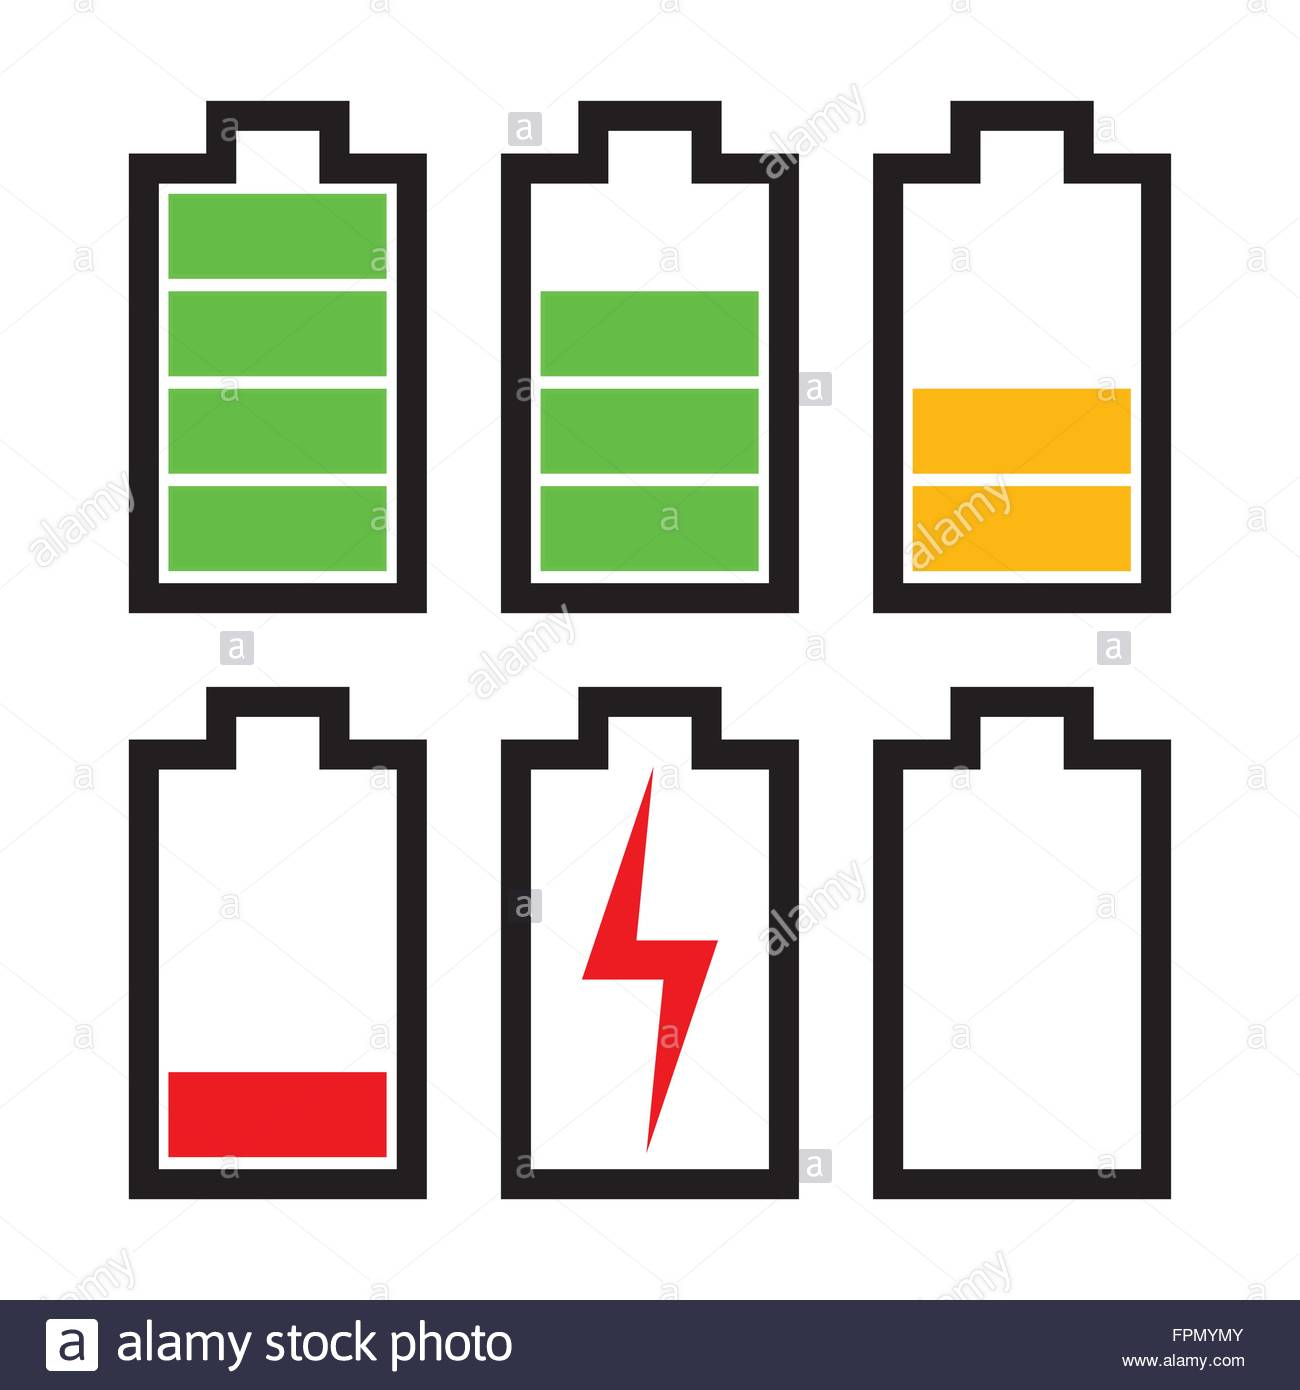 Icons sowing different charge status in an electric battery full icons sowing different charge status in an electric battery full charge medium charge low charge empty out of battery biocorpaavc Images